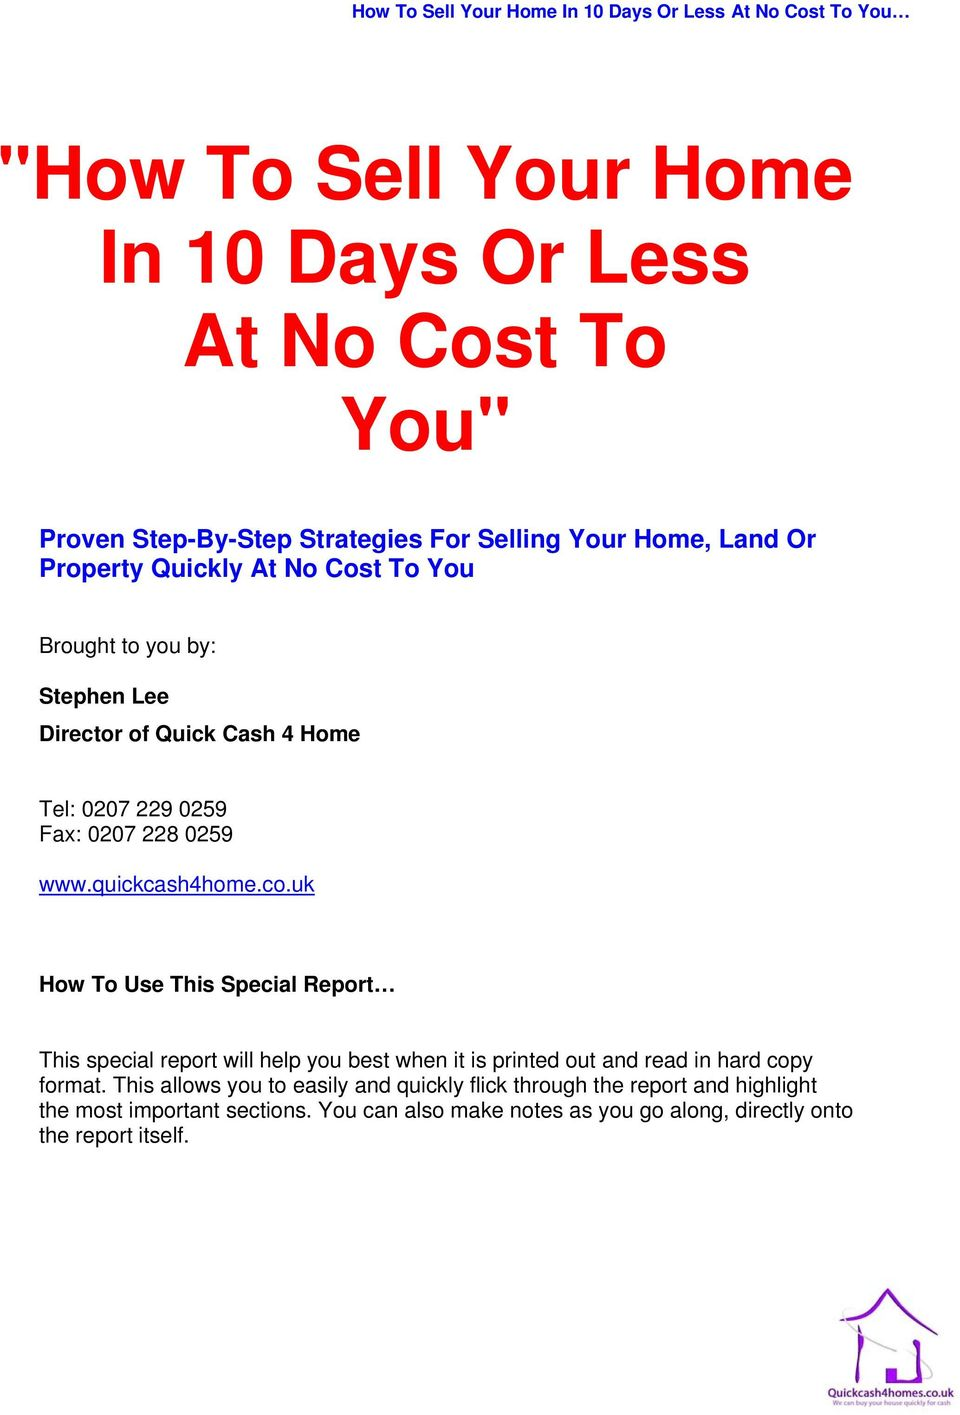 uk How To Use This Special Report This special report will help you best when it is printed out and read in hard copy format.